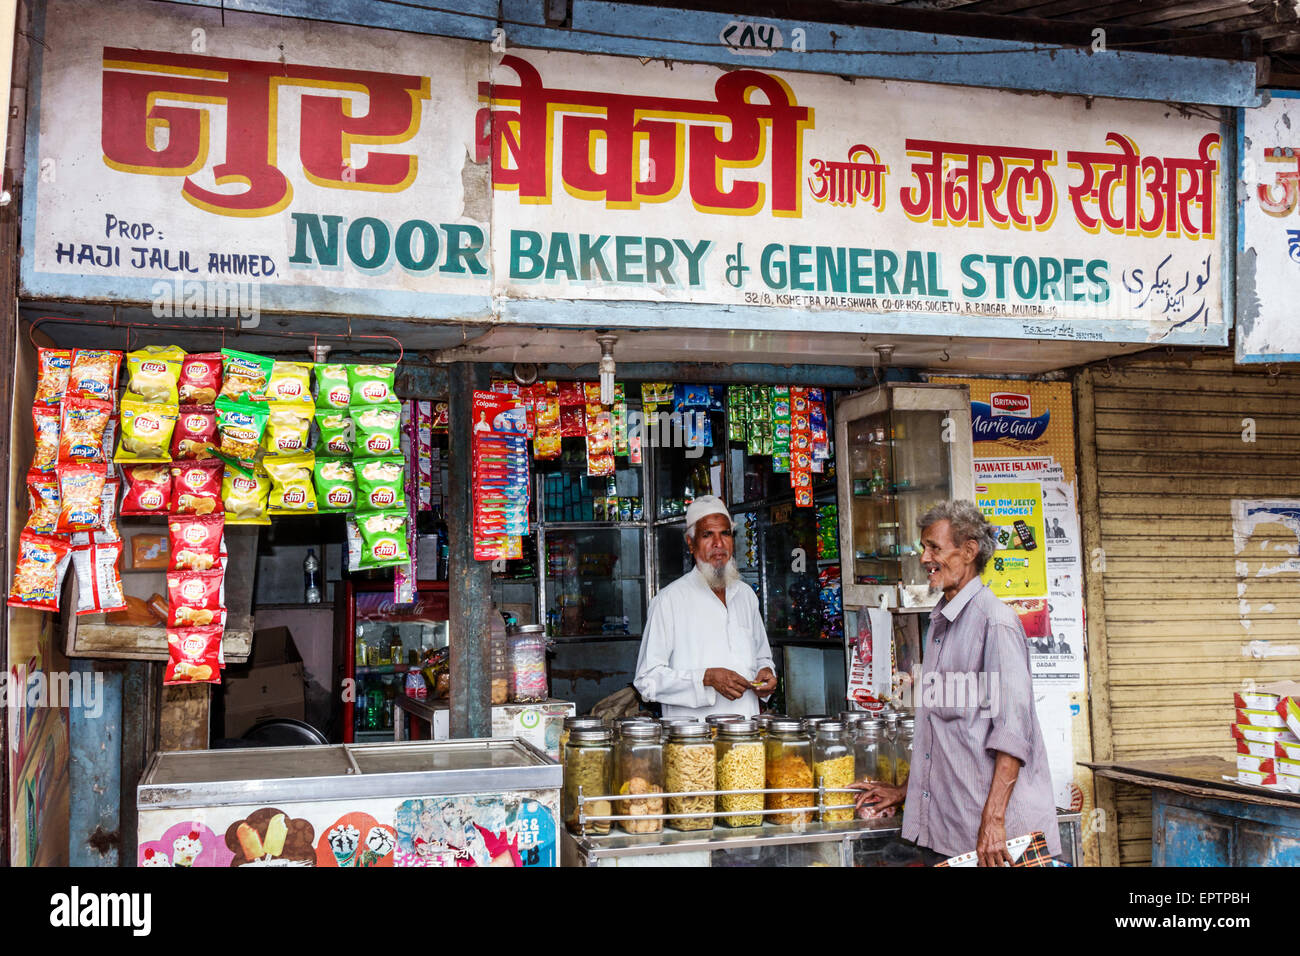 general store business plan in india